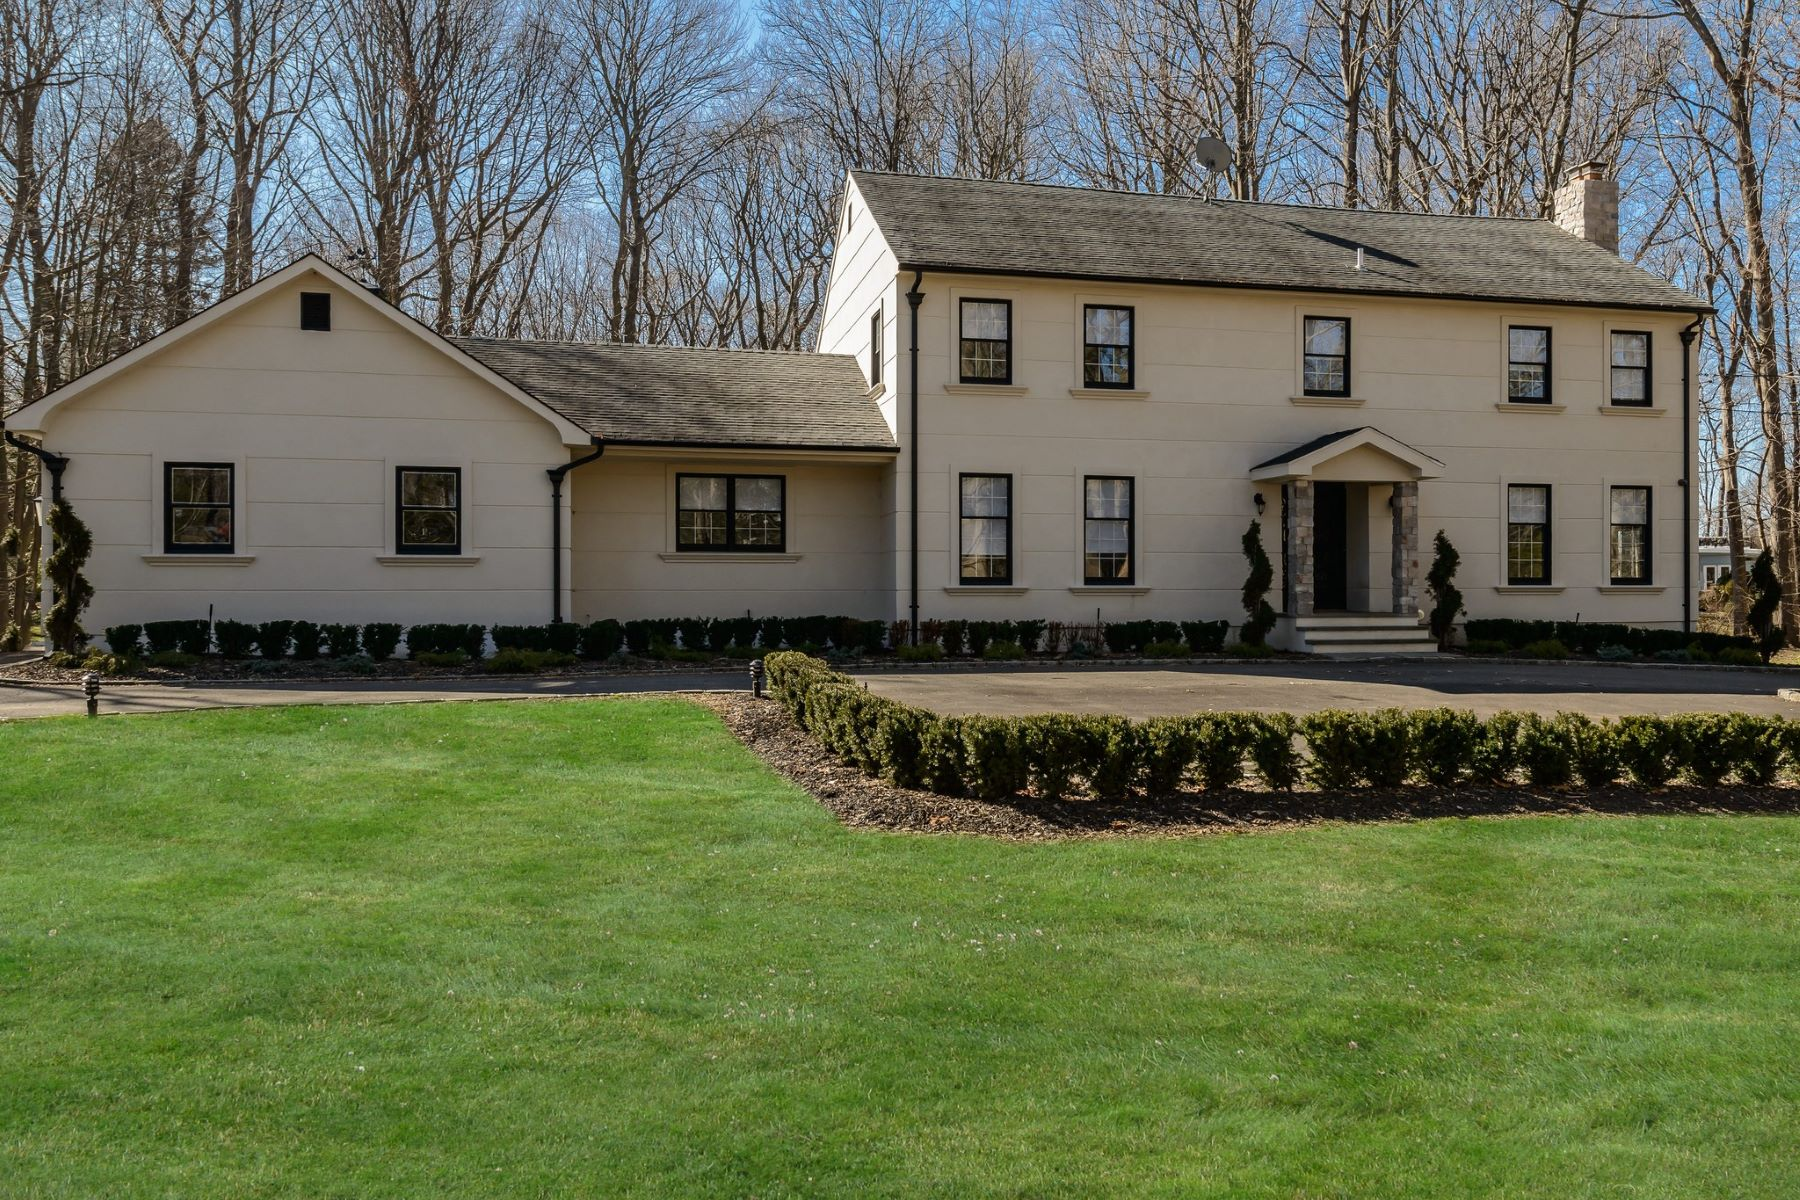 Single Family Homes for Sale at Old Brookville 17 Woodland Ln Old Brookville, New York 11545 United States